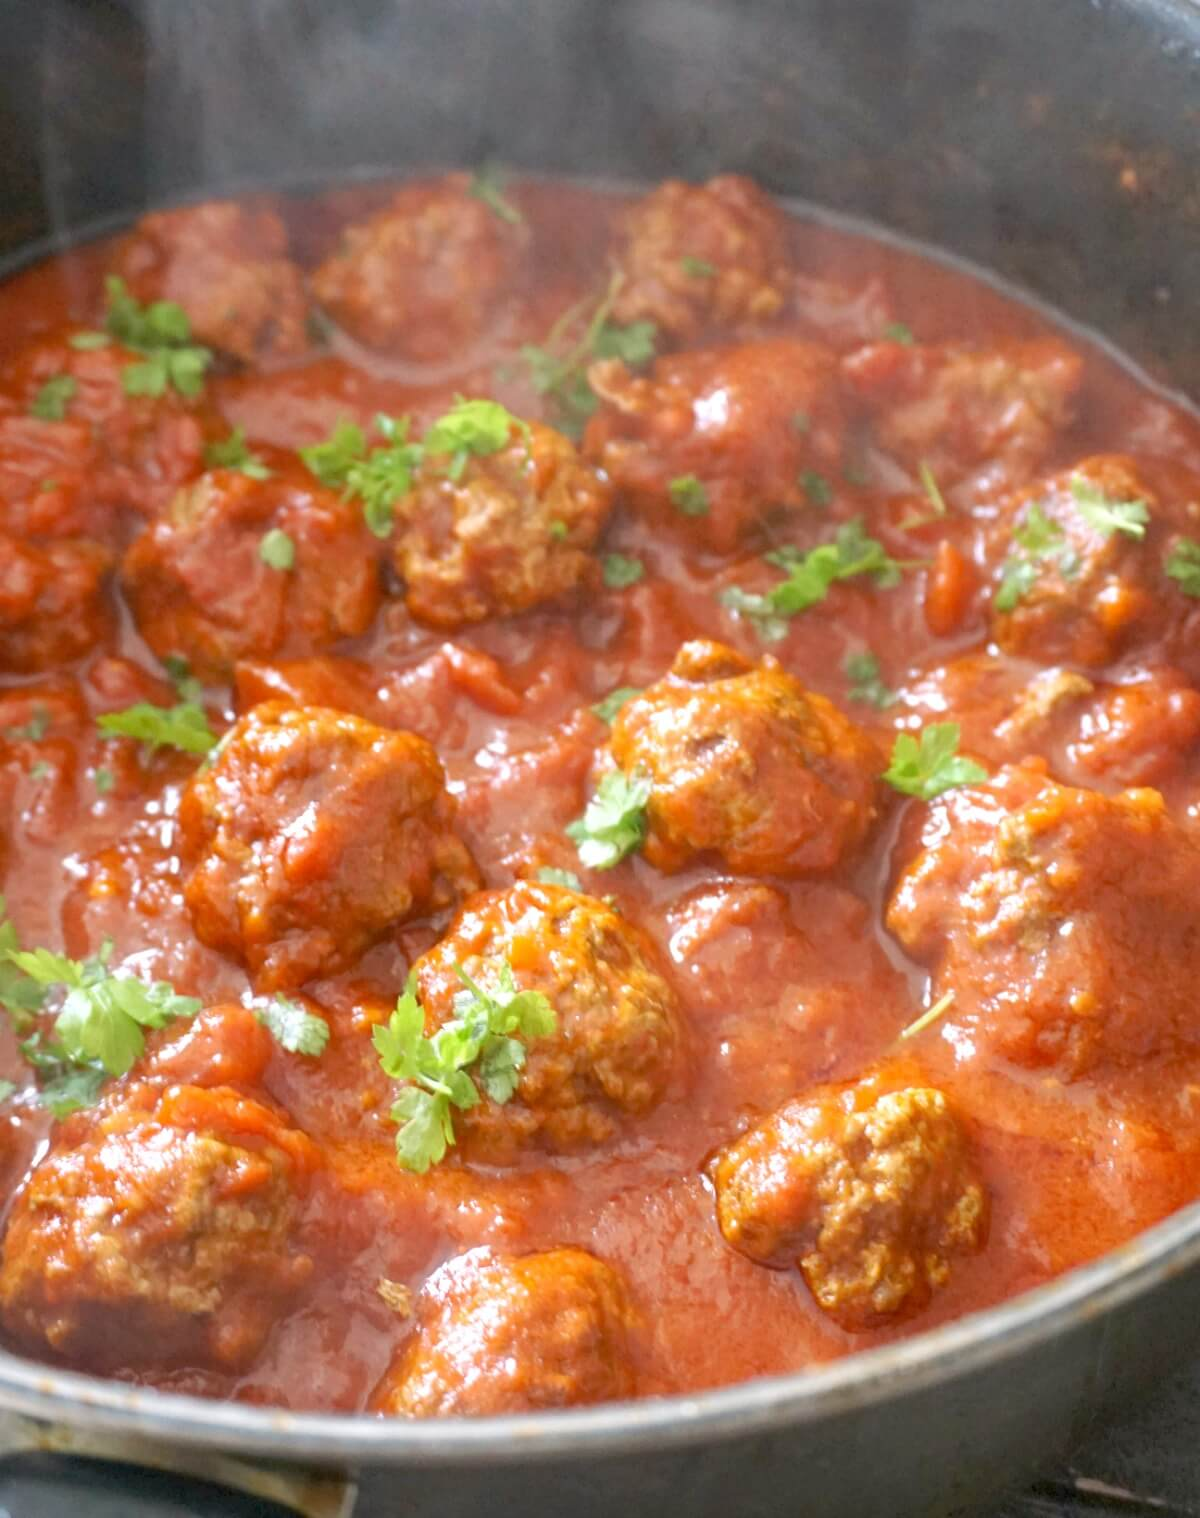 A pot with meatballs in tomato sauce garnished with chopped parsley